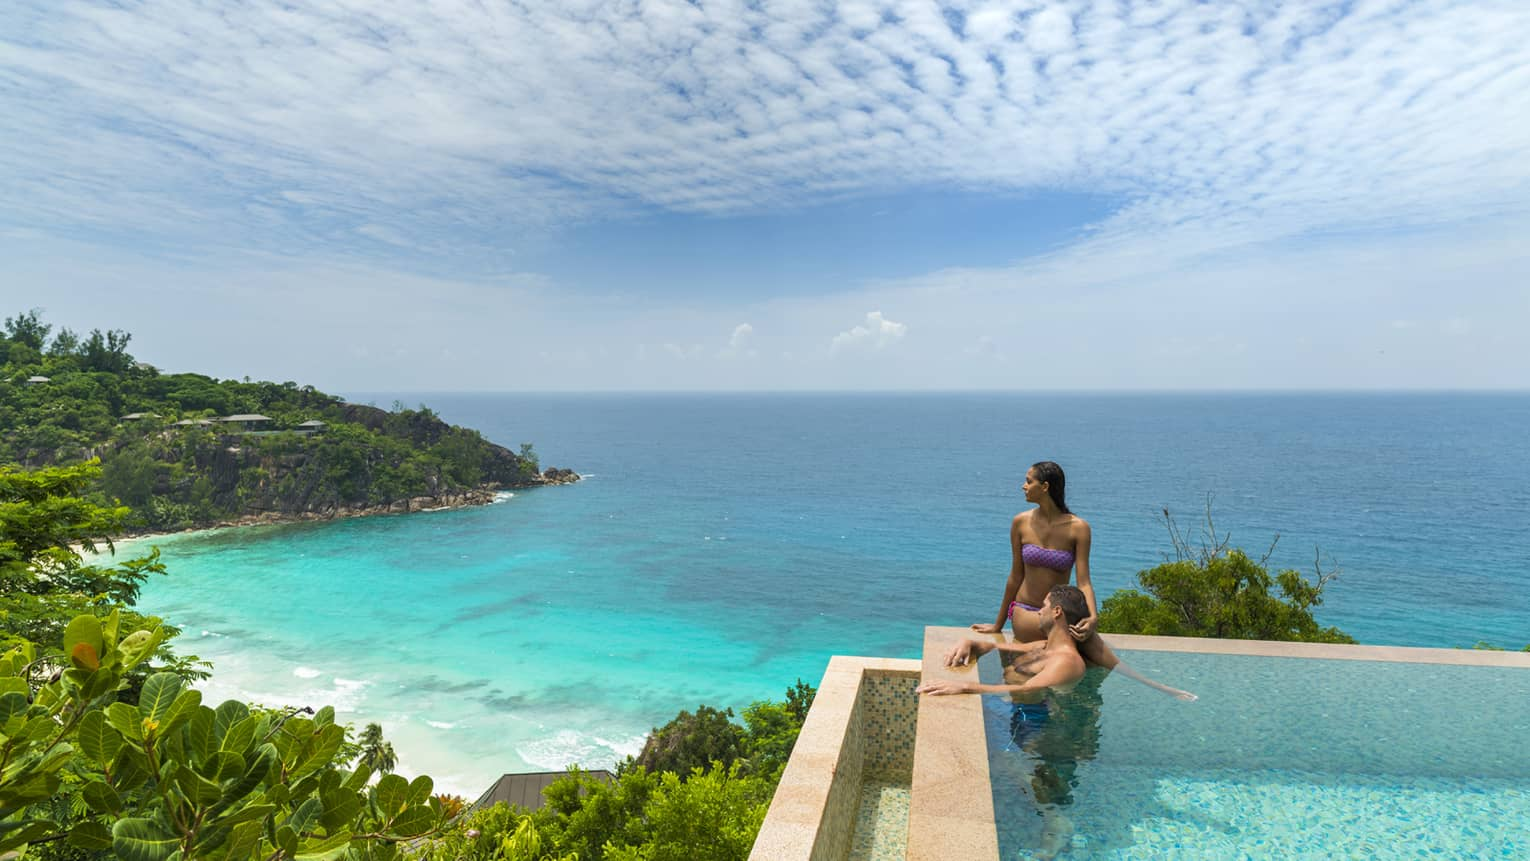 Woman and man stand at edge of infinity pool overlooking tropical mountain forest, ocean